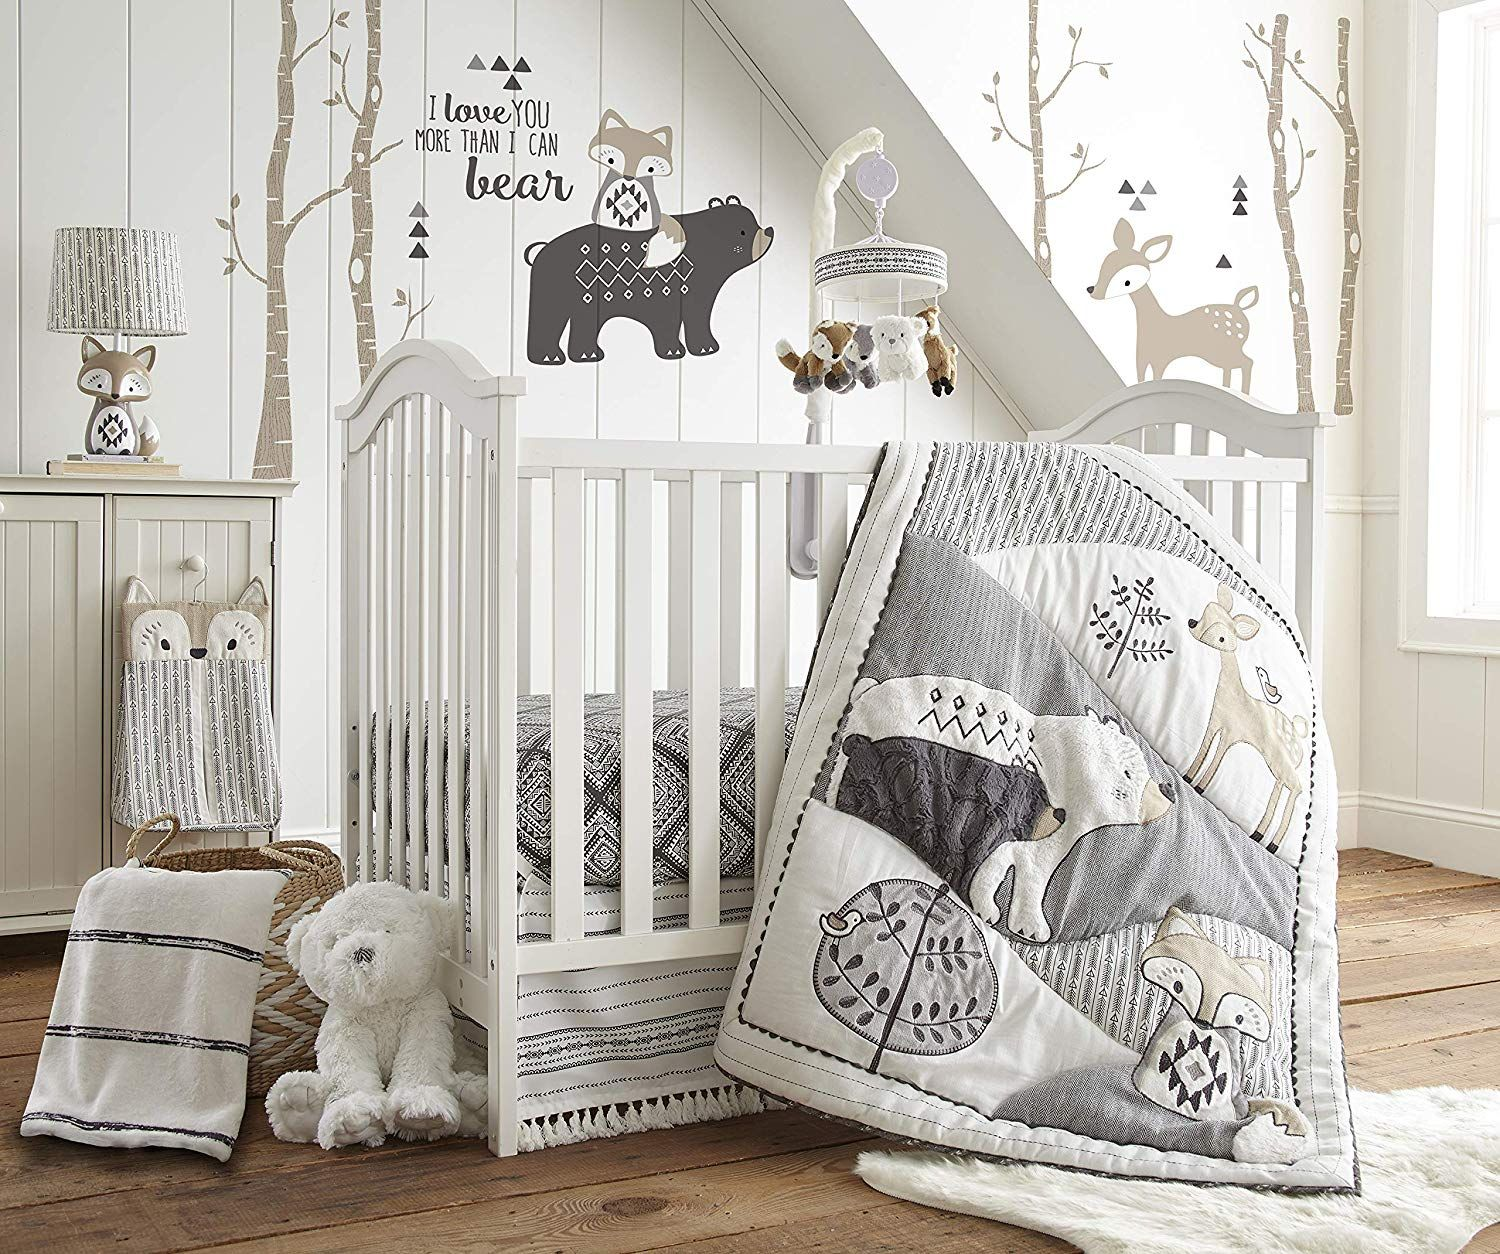 I absolutely loved this crib!! It was everything I hoped